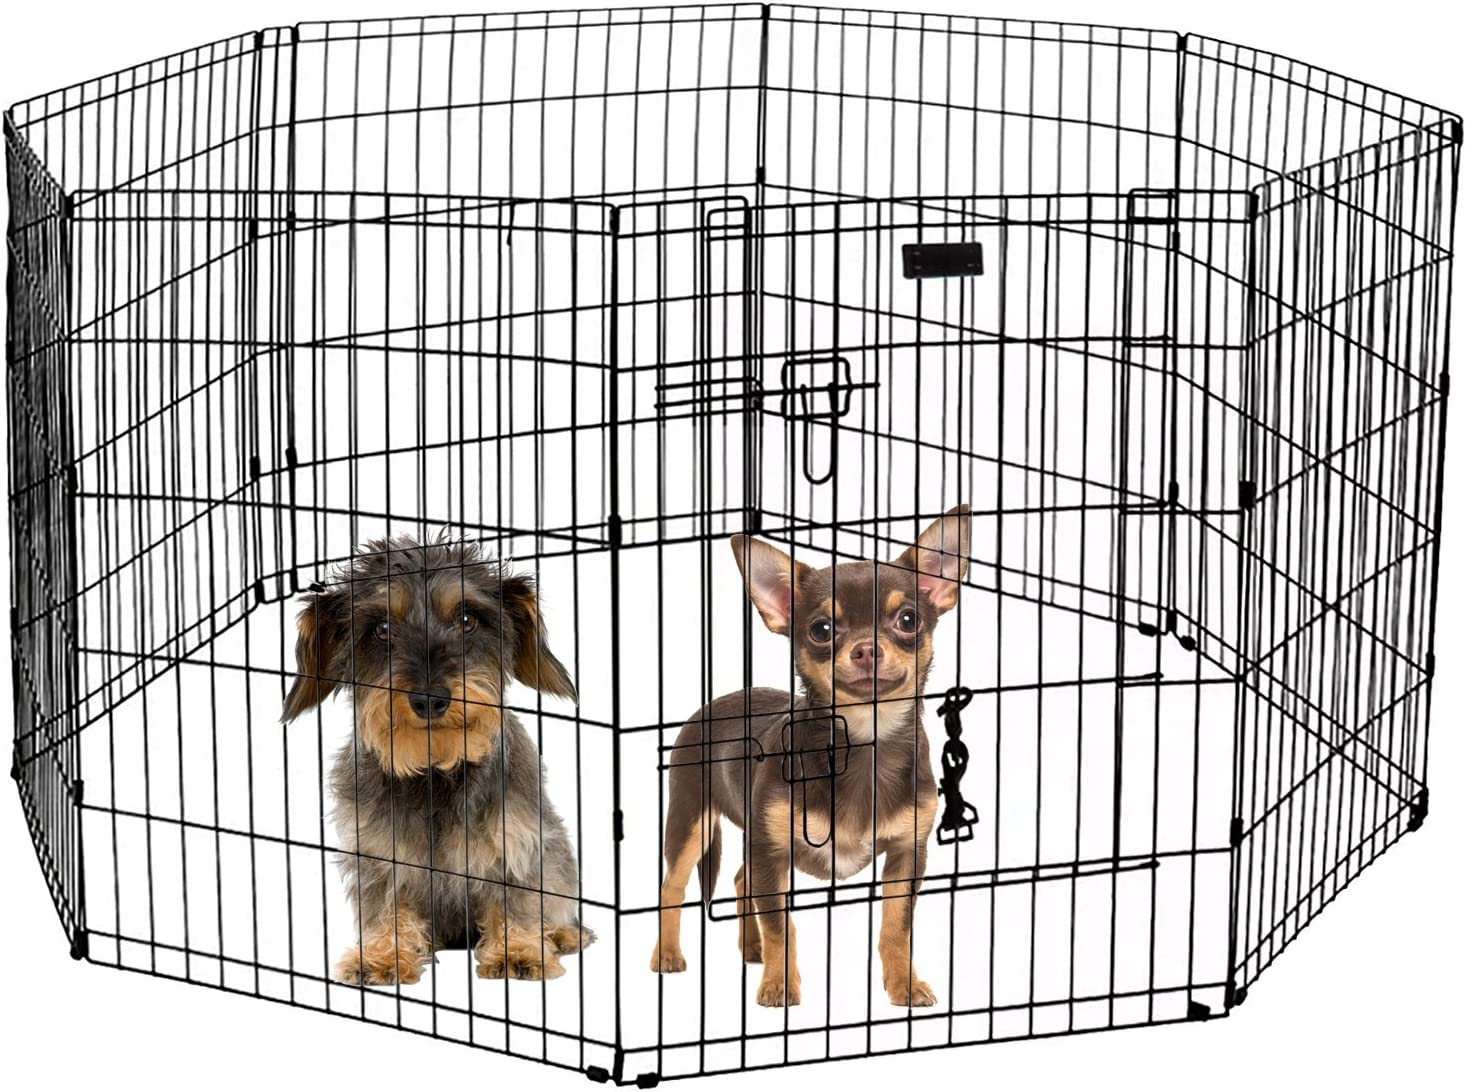 LavoHome Ultimate Folding Dog Animal Pet Playpen Wire Metal 8 Panel Octagon Black Wire Enclosure Fence Exercise Popup Kennel Crate Tent Portable Gate Cage